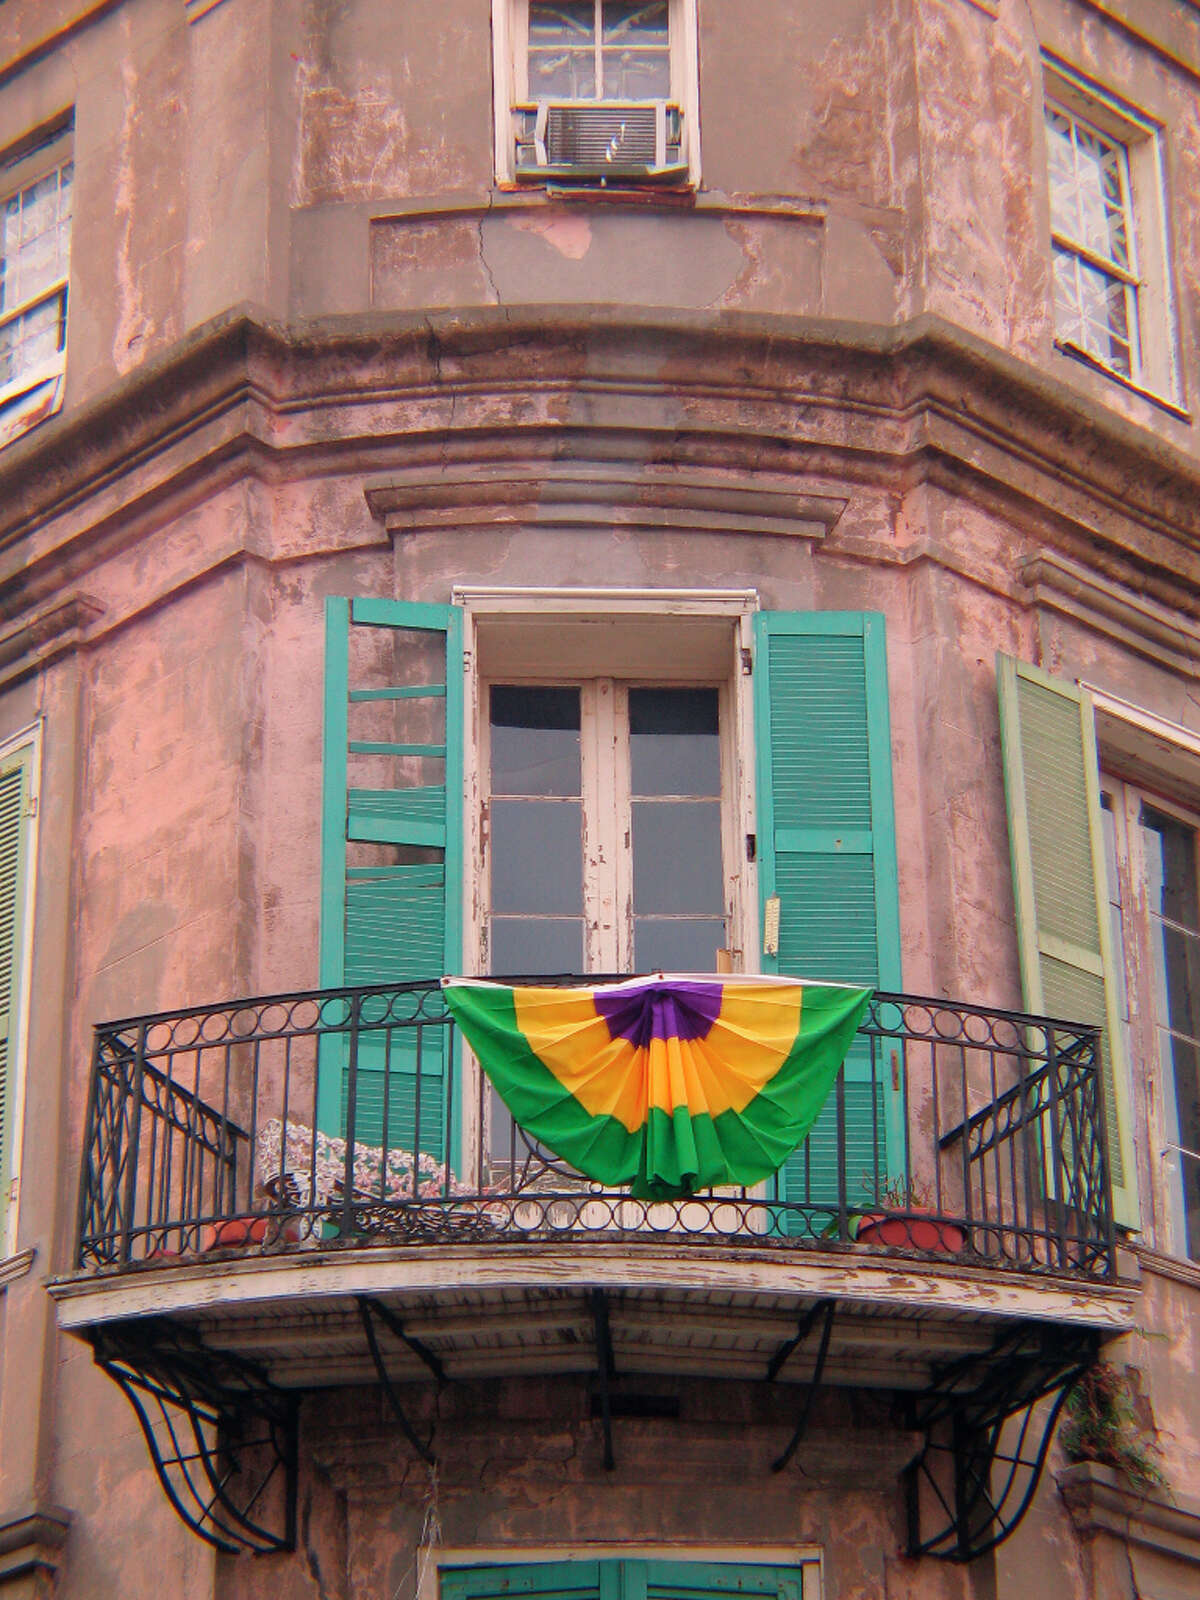 DO: Learn a little about the architecture. The French Quarter and Garden District are made for walking and knowing a little about the buildings makes it more interesting. (Example: Most of the iconic French Quarter design is actually Spanish.)